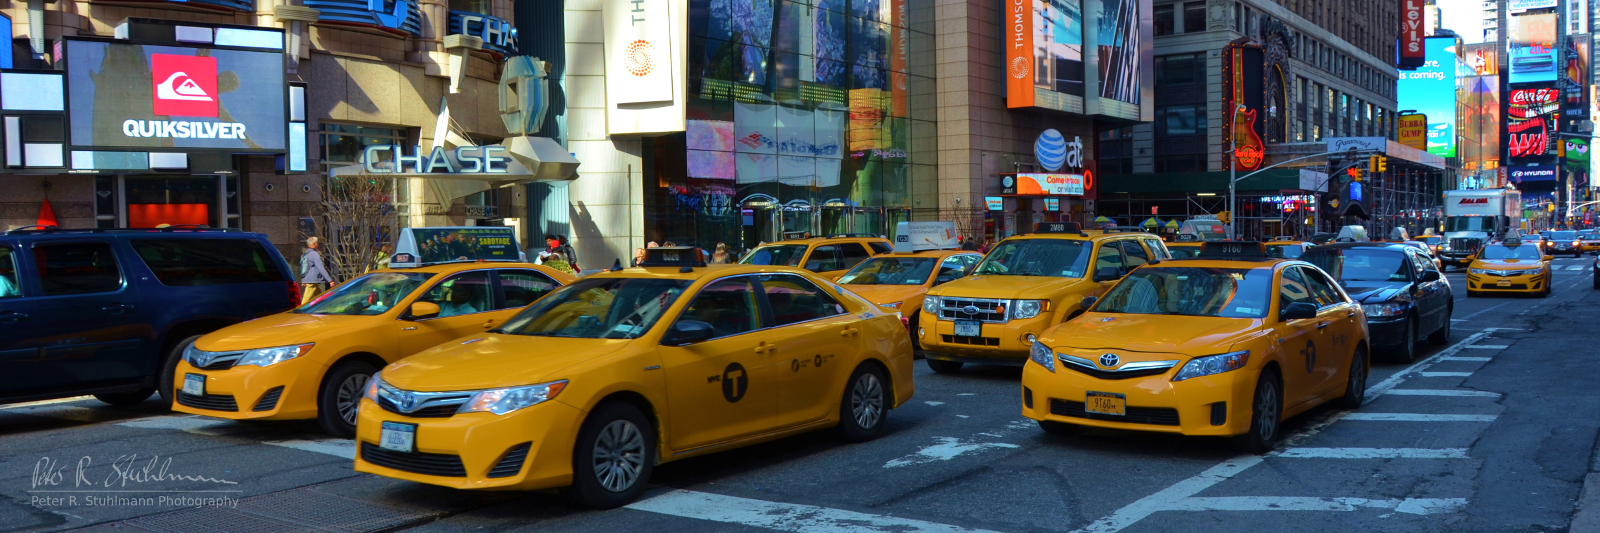 Taxis am Times Square